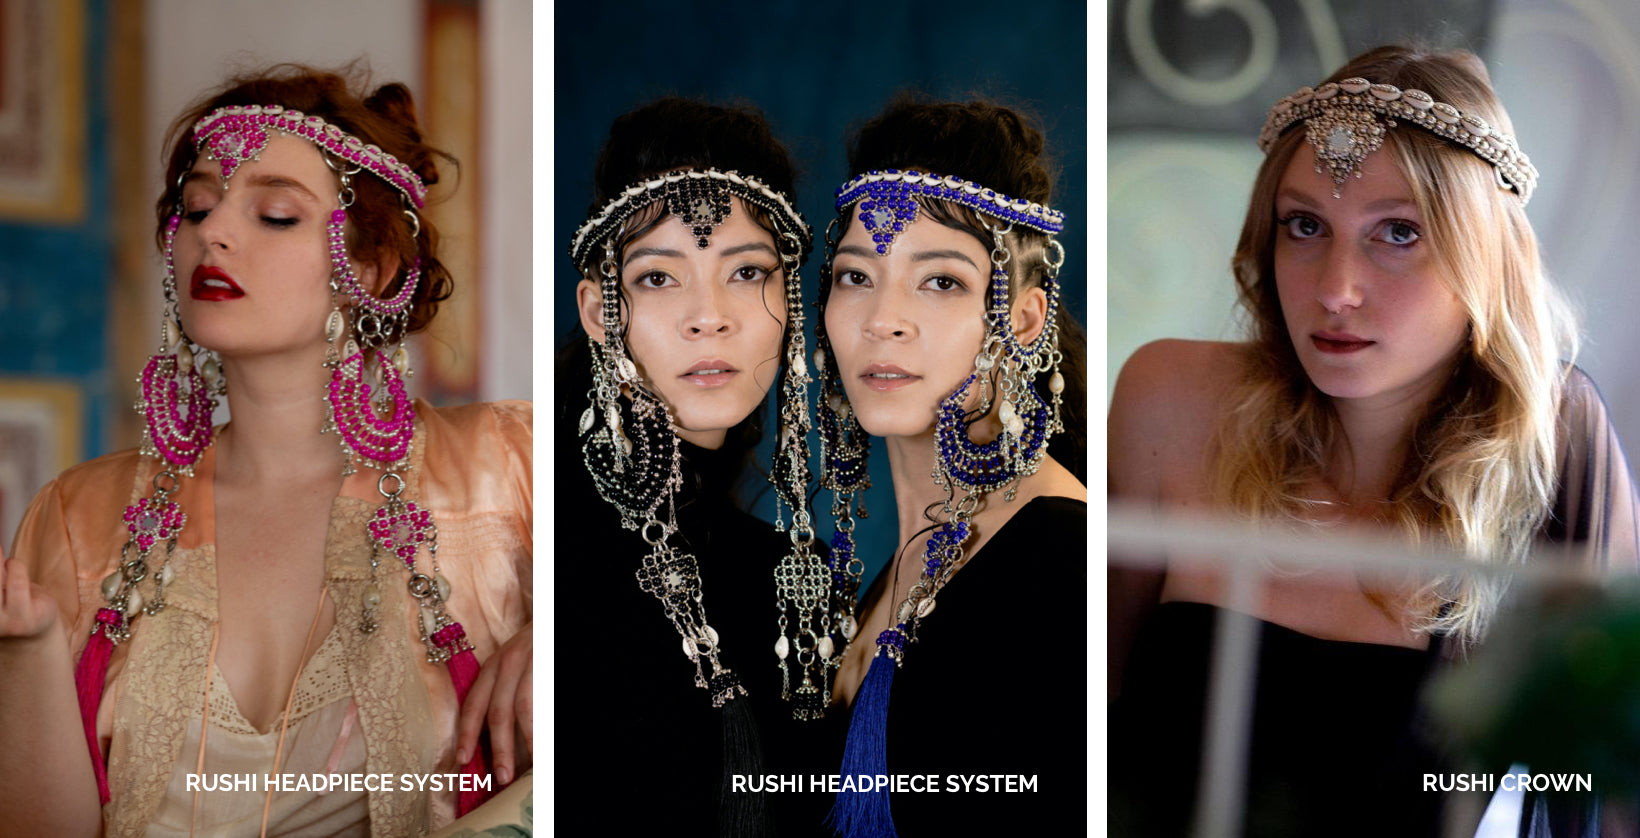 Shop now – Rushi Headpiece System and Crown by Object and Dawn.